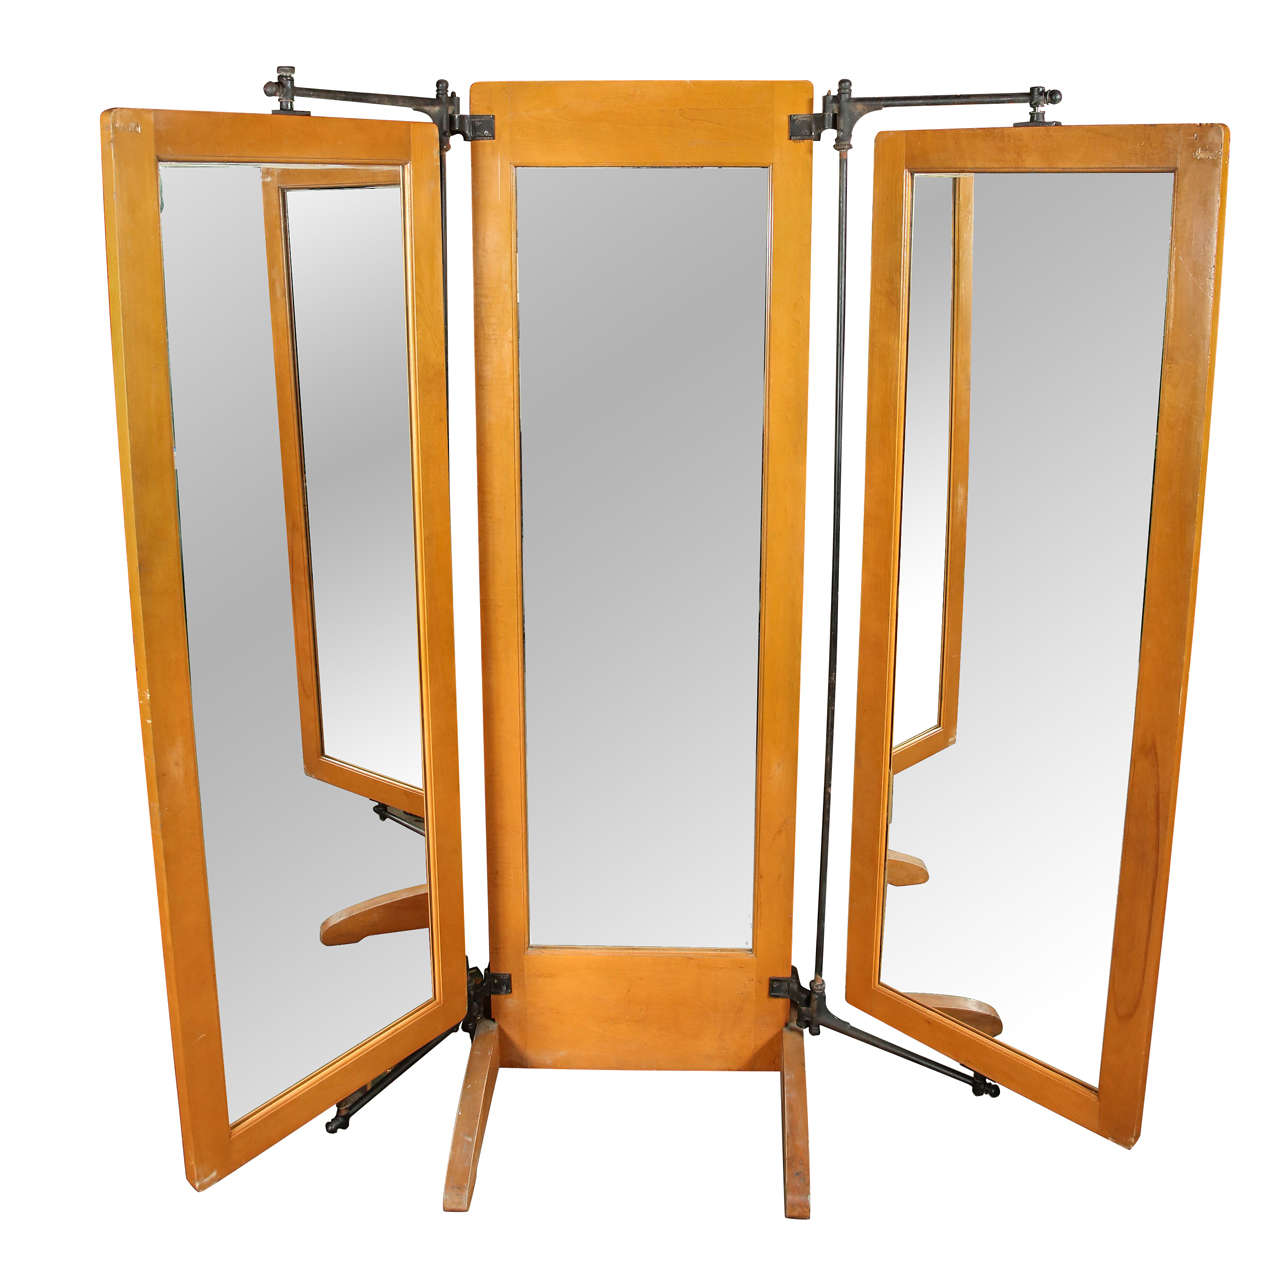 Antique trifold dressing room mirror at 1stdibs for Furniture and mirror